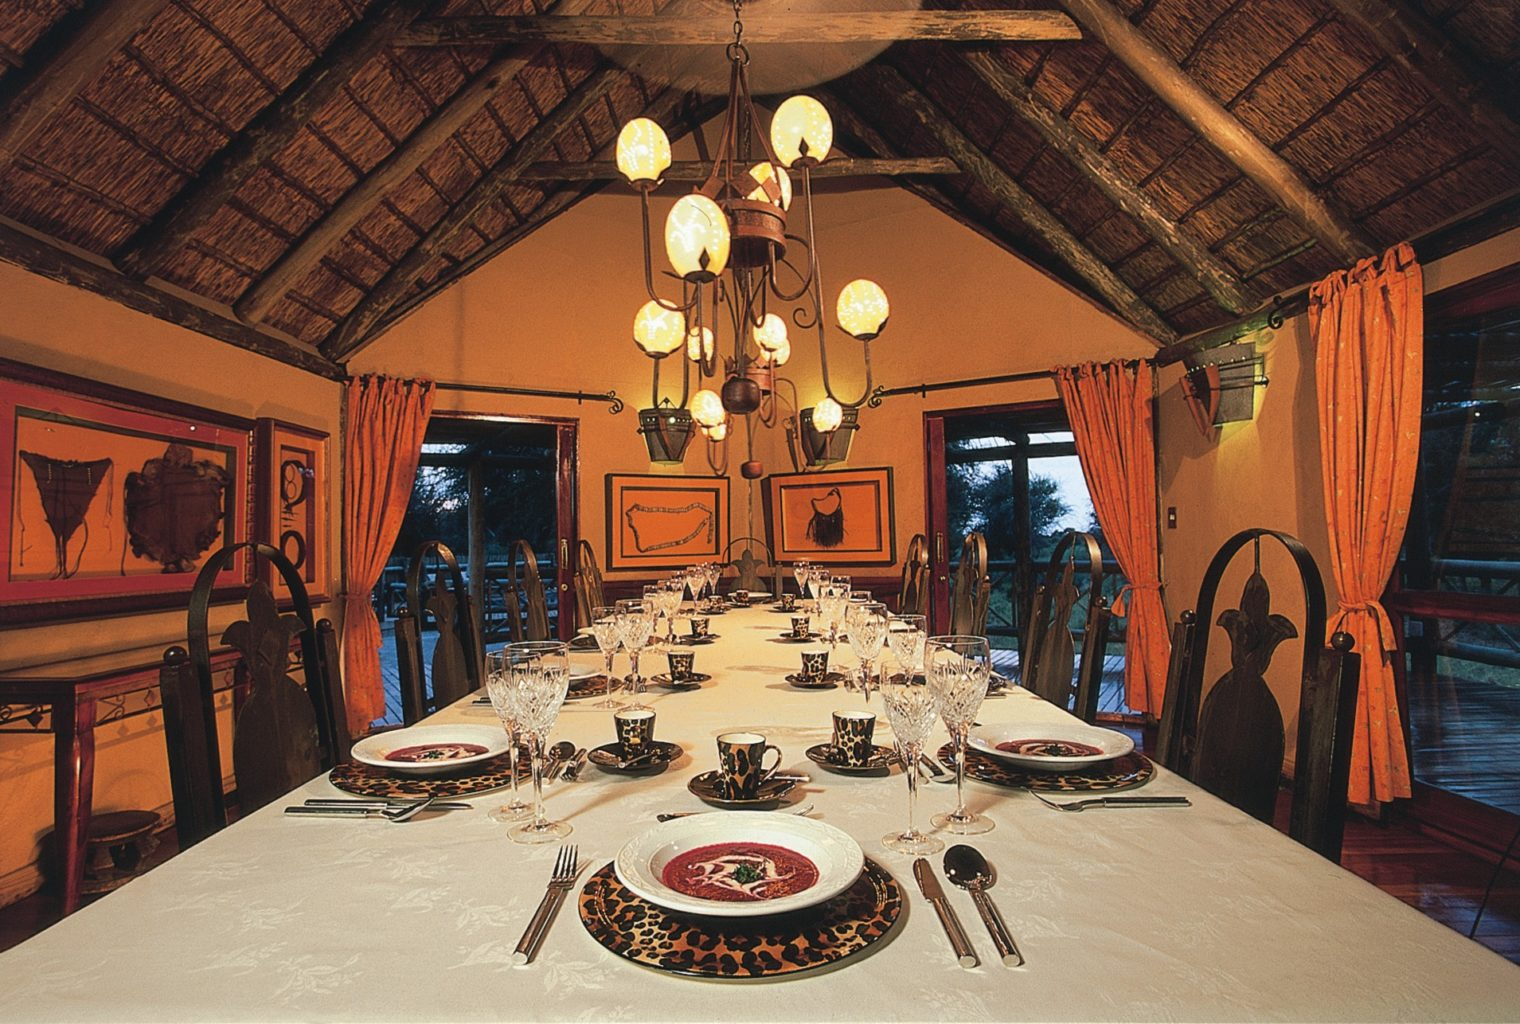 Deception Valley Lodge Botswana Table setting